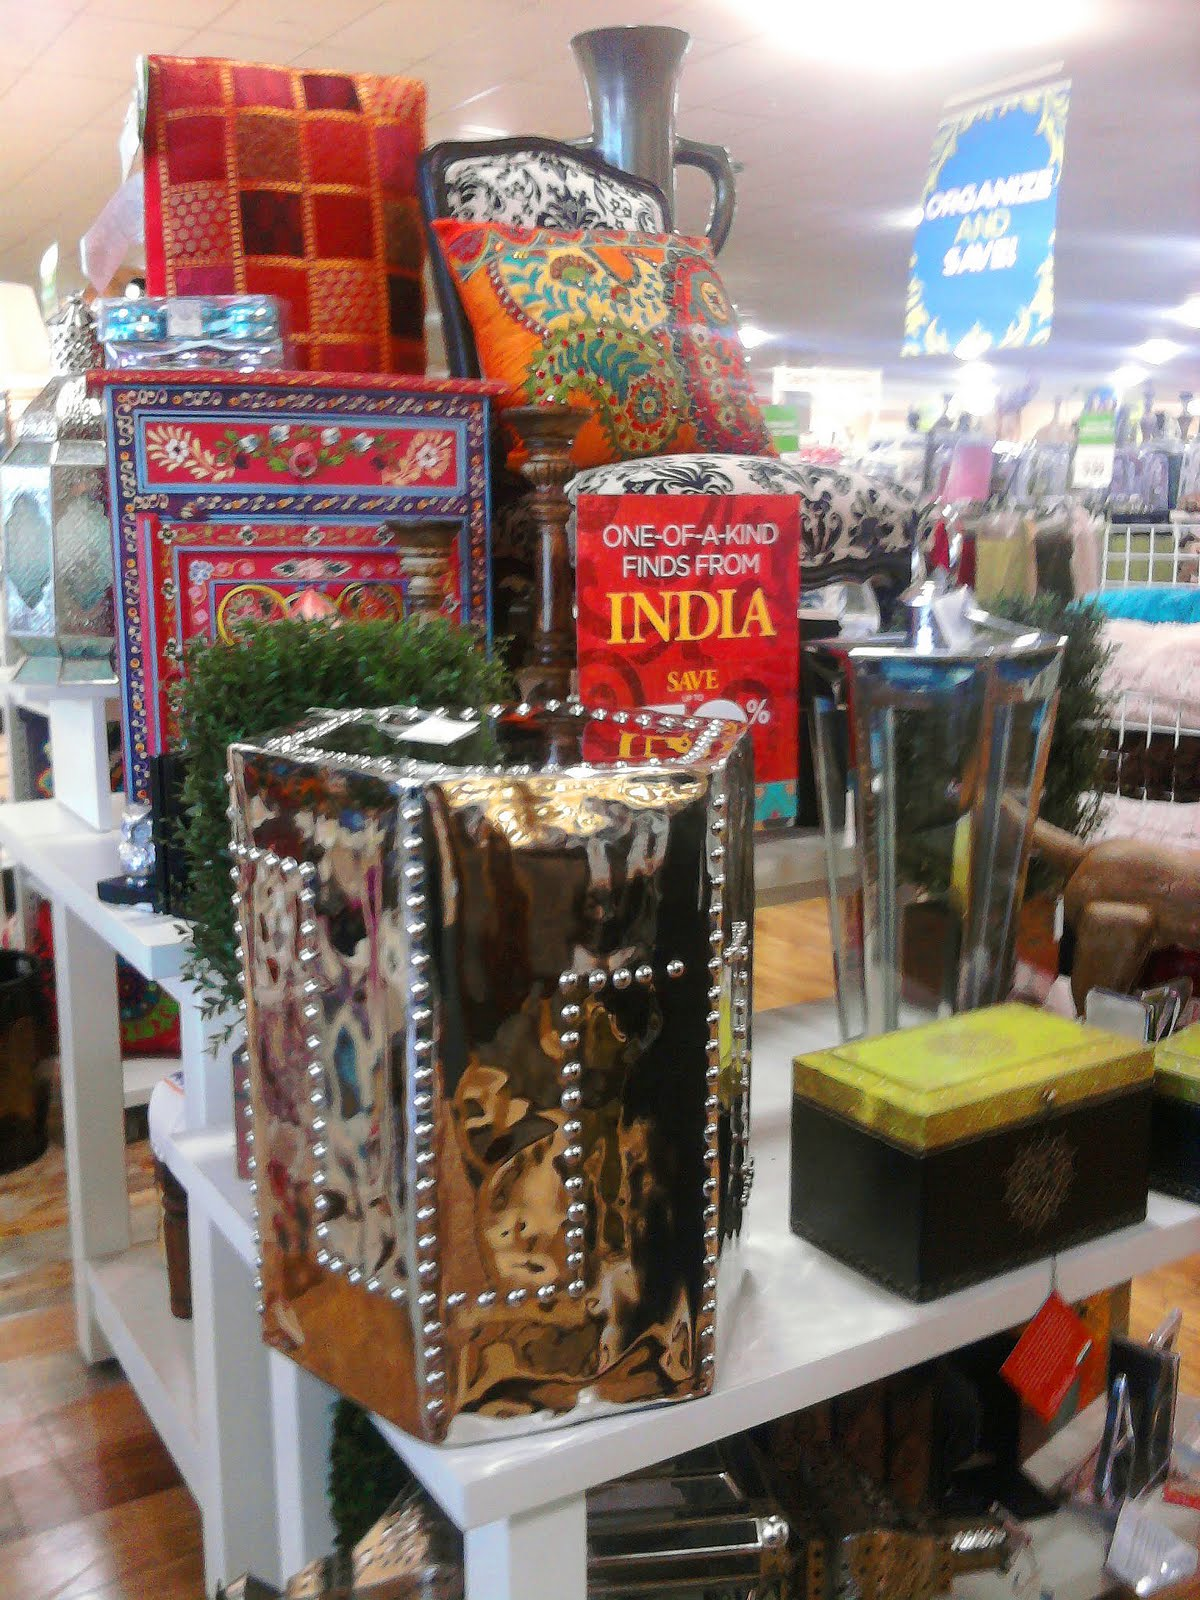 One of a kind finds from INDIA at Home Goods. apartmentf15  July 2011